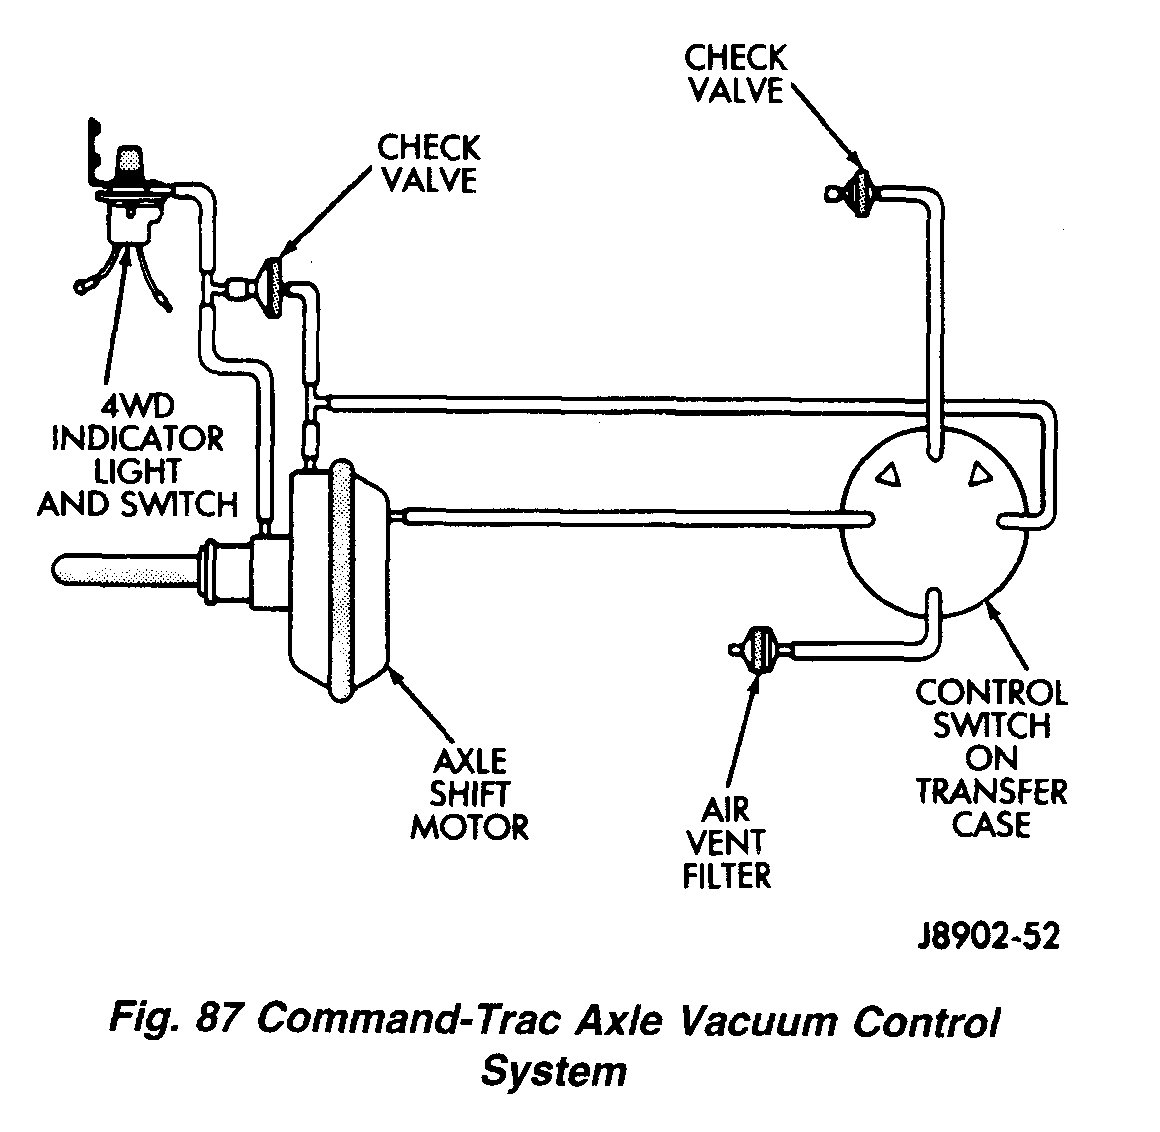 hight resolution of 1988 yj 4 2l i6 4wd vacuum lines diagram needed jeep wrangler forum 1989 jeep wrangler 4x4 vacuum diagram jeep wrangler 4wd vacuum diagram